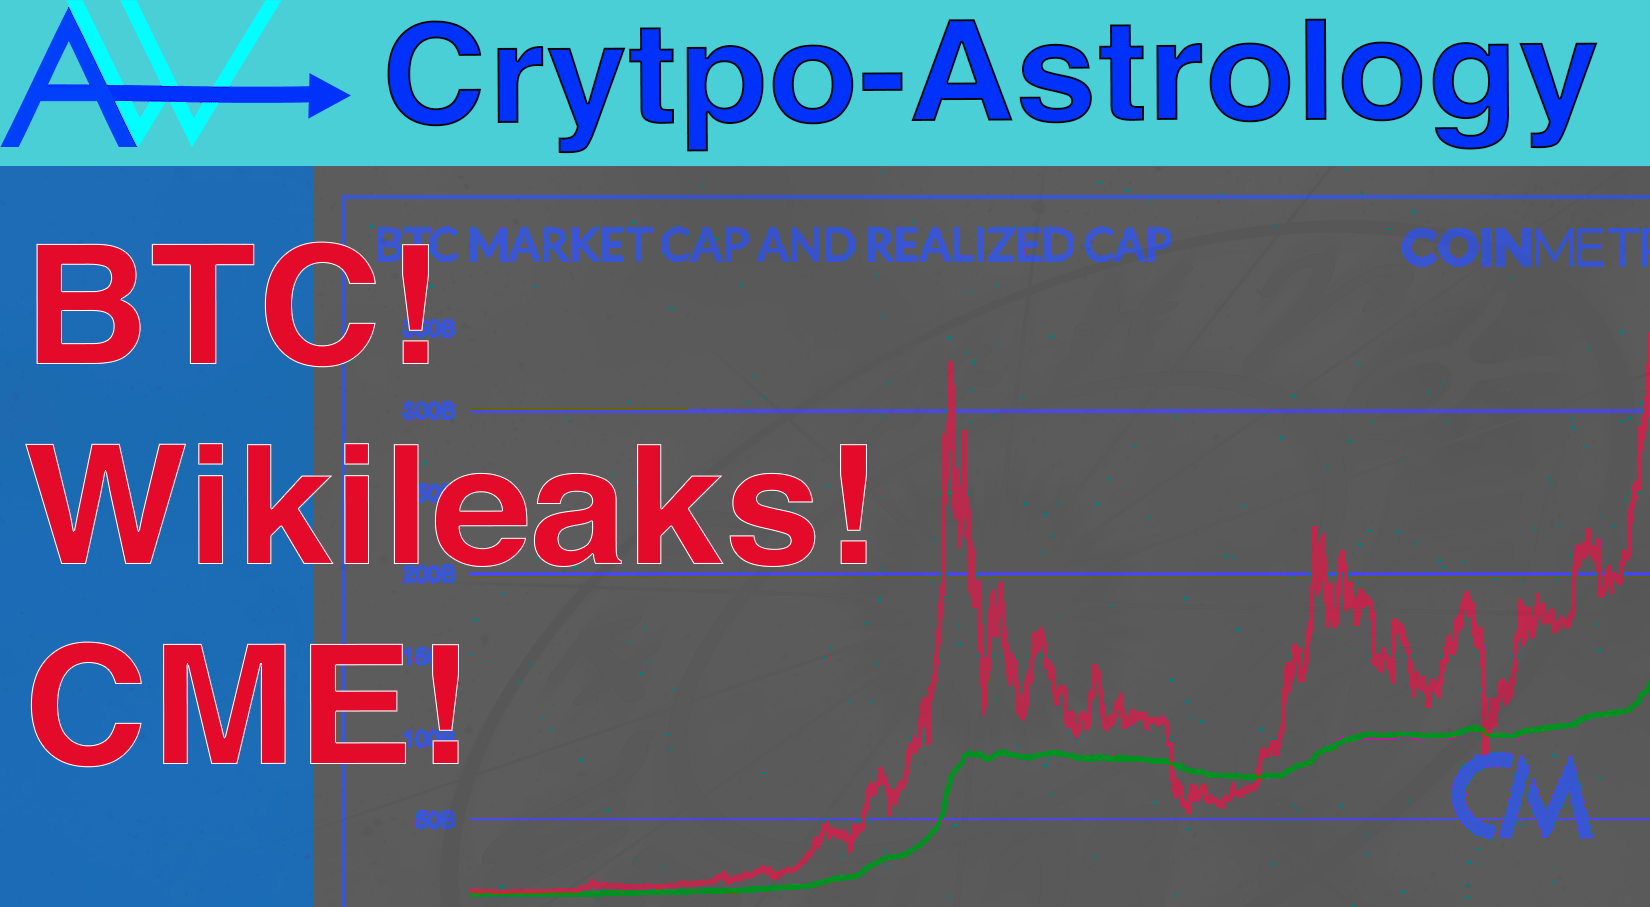 You are currently viewing Crypto! News Leaks! Chaos Starts<br><span style='color:#00adee;font-size:.8em'>Chaos Starts, News Leaks!</span>